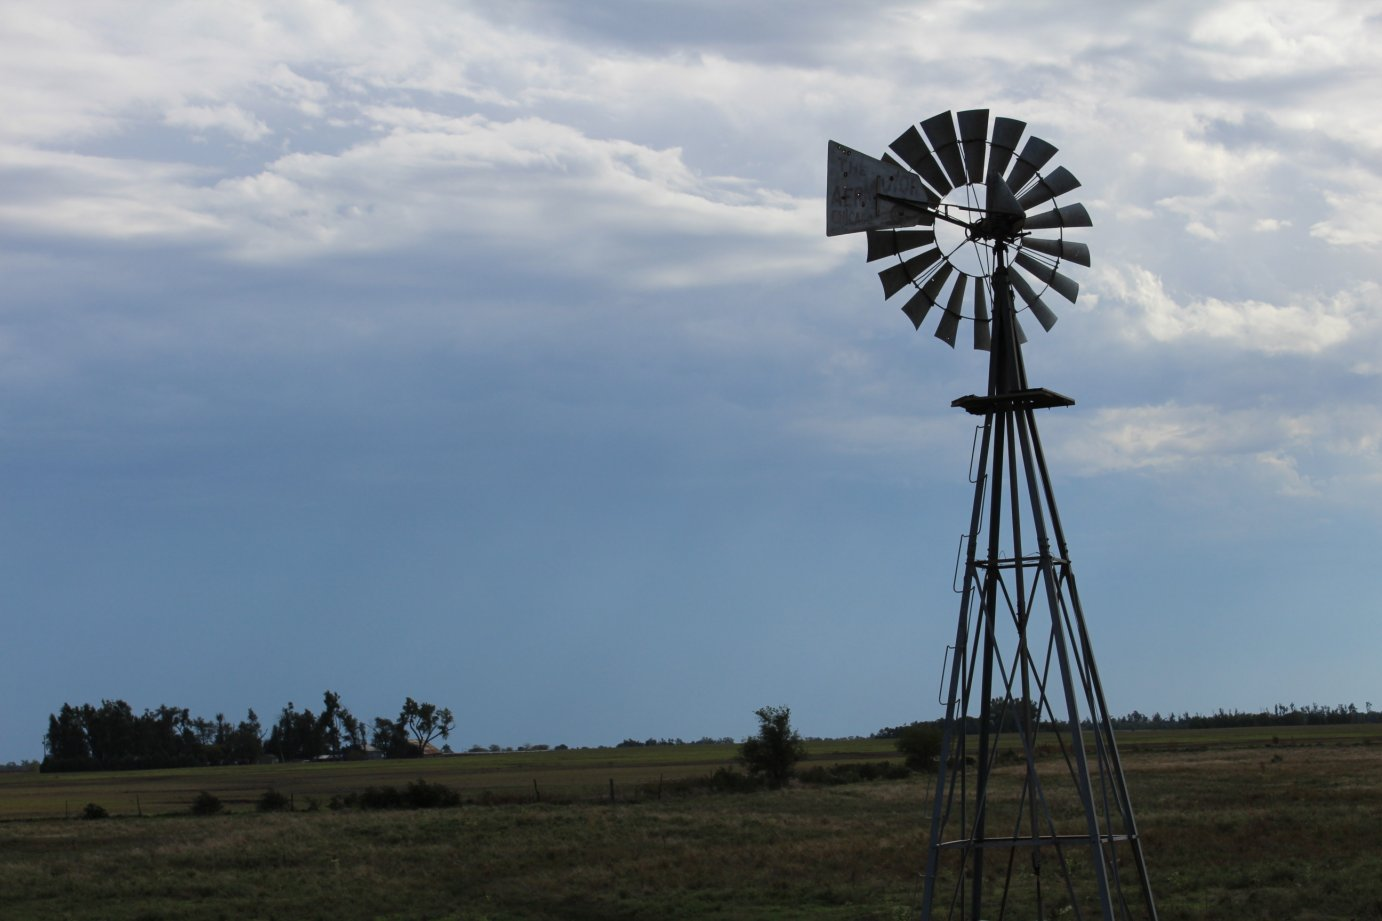 Traditional windmills, like this one near Quivira National Wildlife Refuge in Stafford County, still dot the Kansas landscape and continue to be seen in many other parts of rural America. (Photo by J. Schafer)